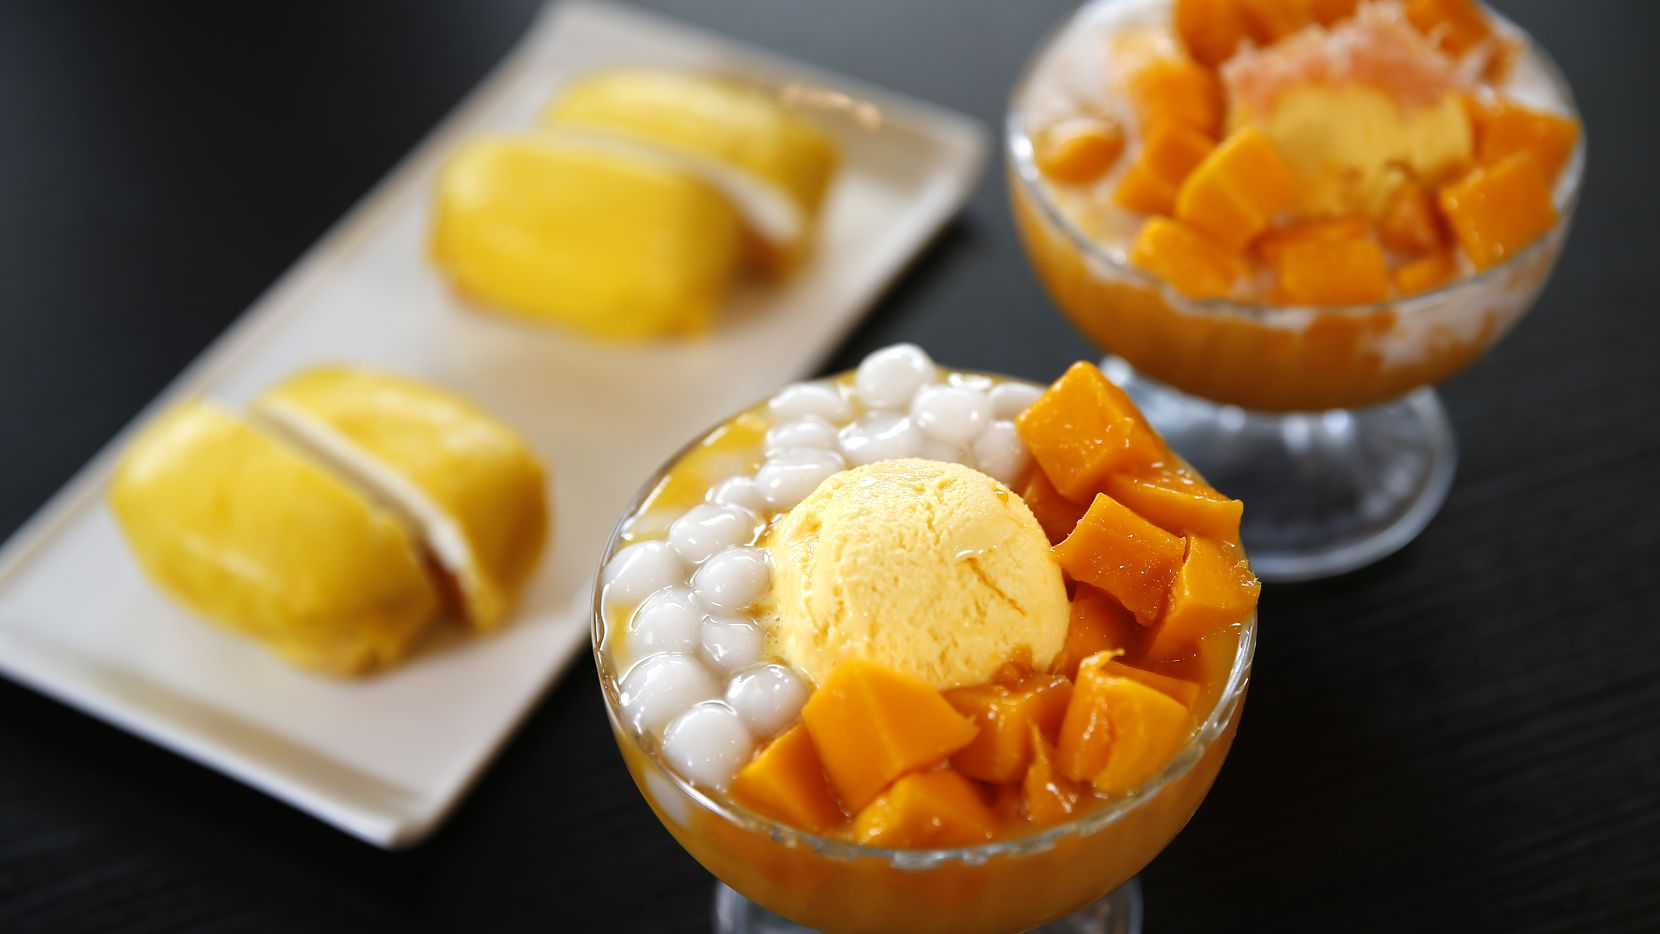 Mango Mango Dessert in Plano is one of about 40 restaurants in Dallas-Fort Worth that will allow Chowbus to deliver its food.